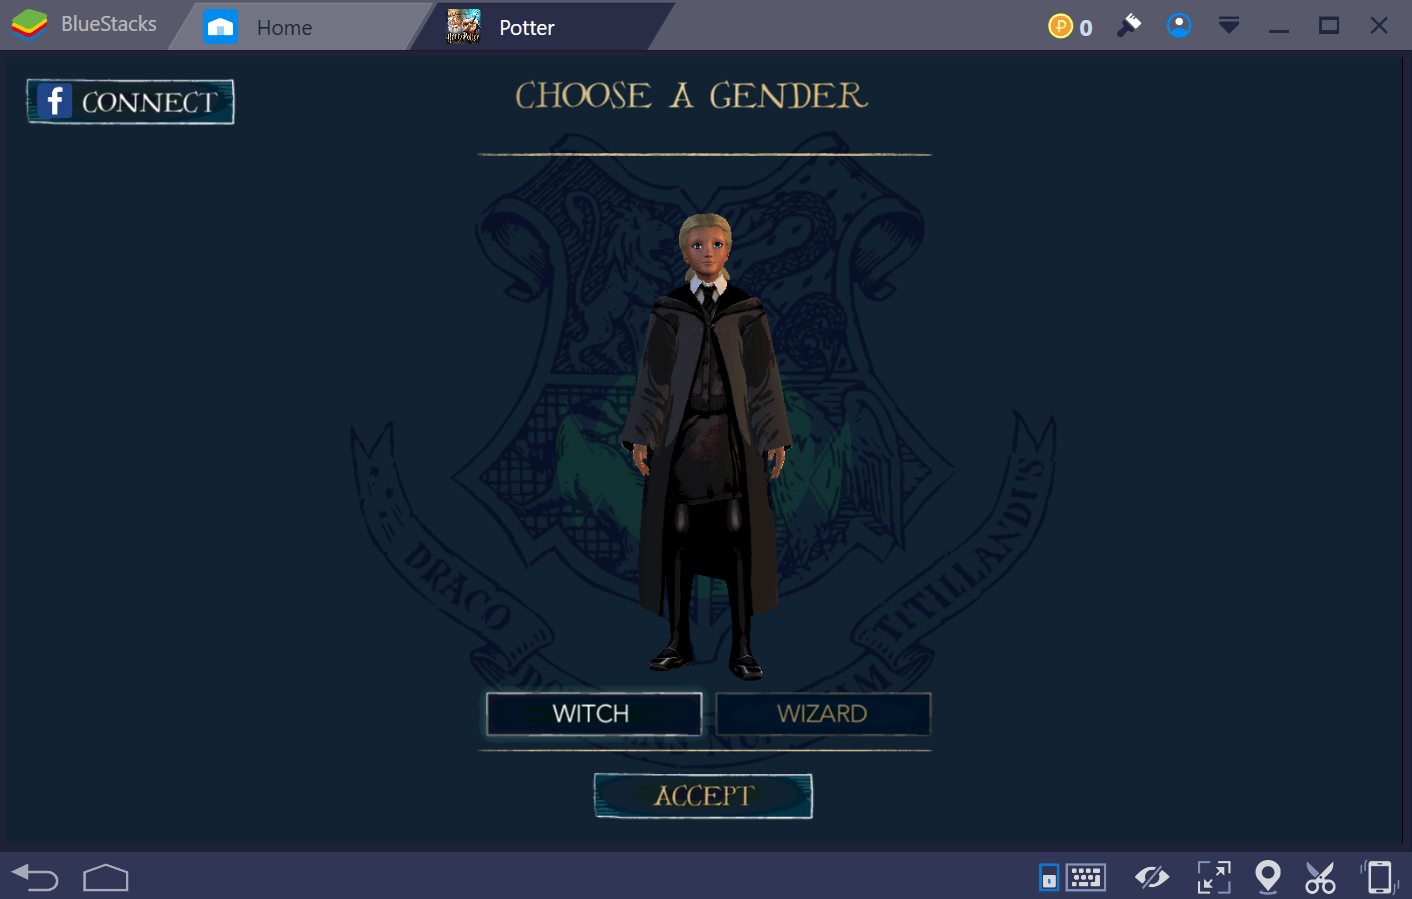 Download Harry Potter: Hogwarts Mystery for PC Download, Install and Play Harry Potter: Hogwarts Mystery on your Desktop or Laptop with Mobile App Emulators like Bluestacks, Nox, MEmu…etc. Harry Potter: Hogwarts Mystery Review, Main Features, Gameplay and Video If you're a huge fan of the Harry Potter franchise and have always dreamed of receiving your very own invitation to attend ...